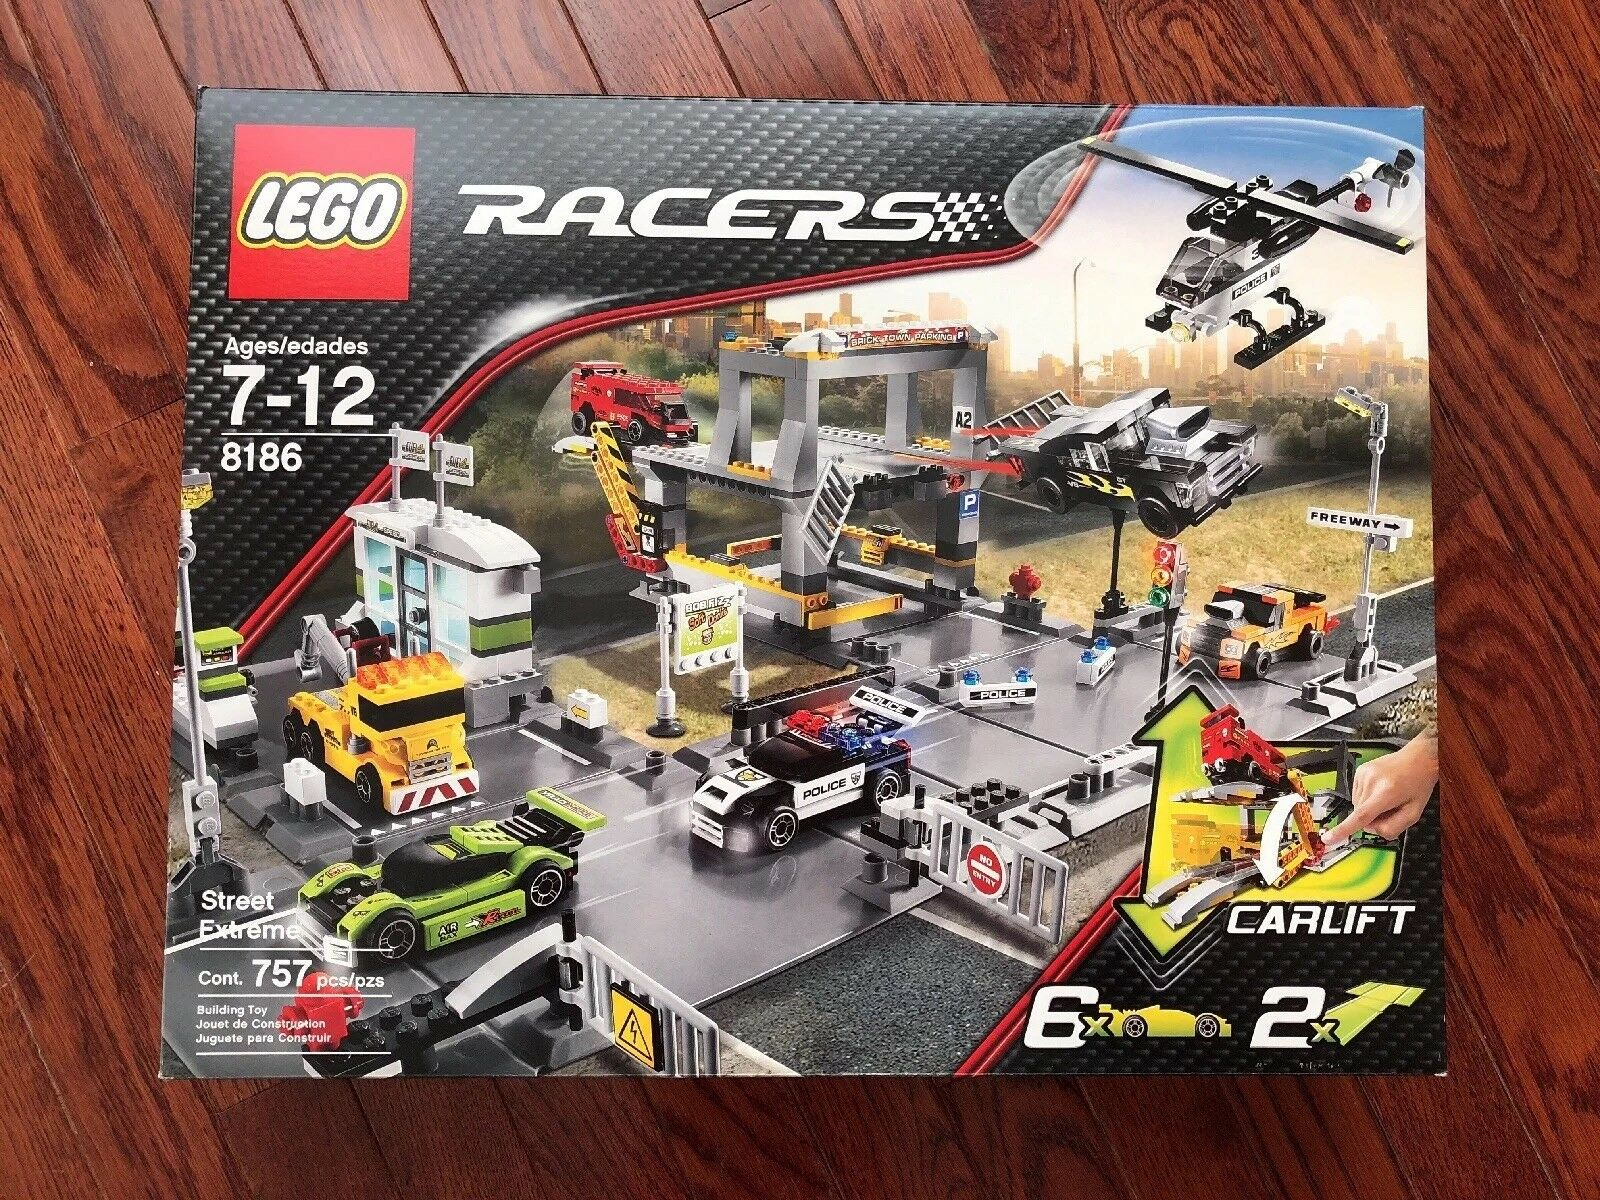 NEW Lego 8186 Racers Street Extreme, SEALED